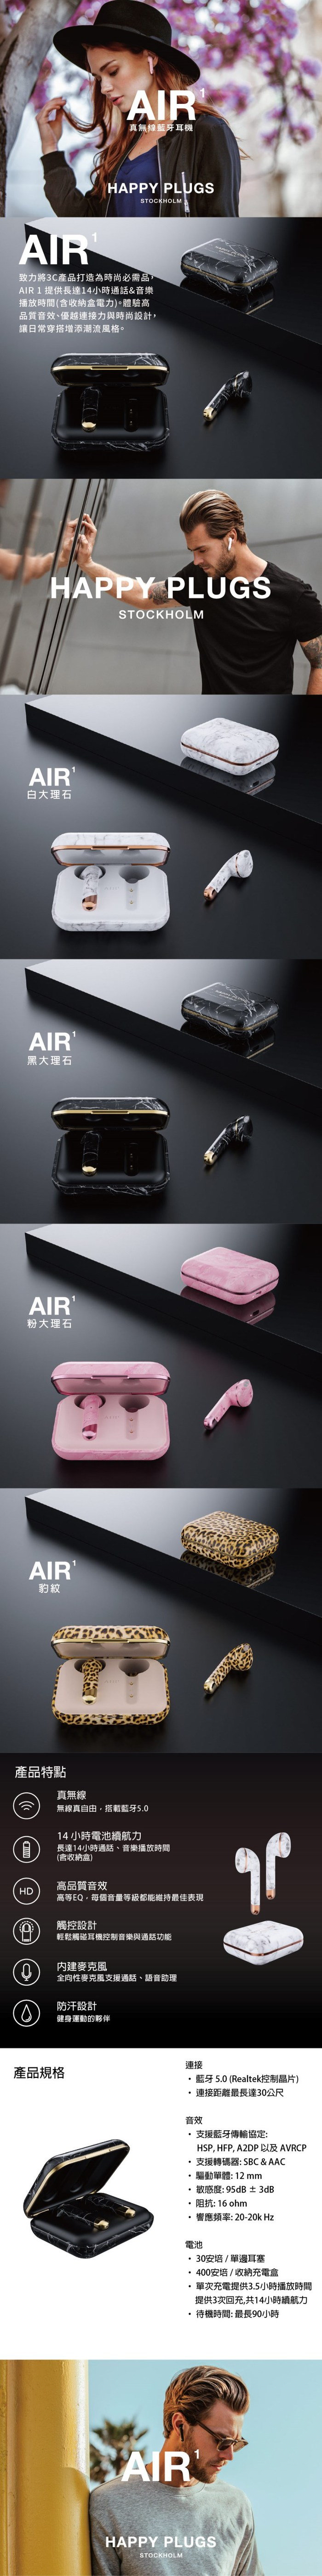 HAPPY PLUGS|Air 1真無線藍牙耳機(粉大理石)